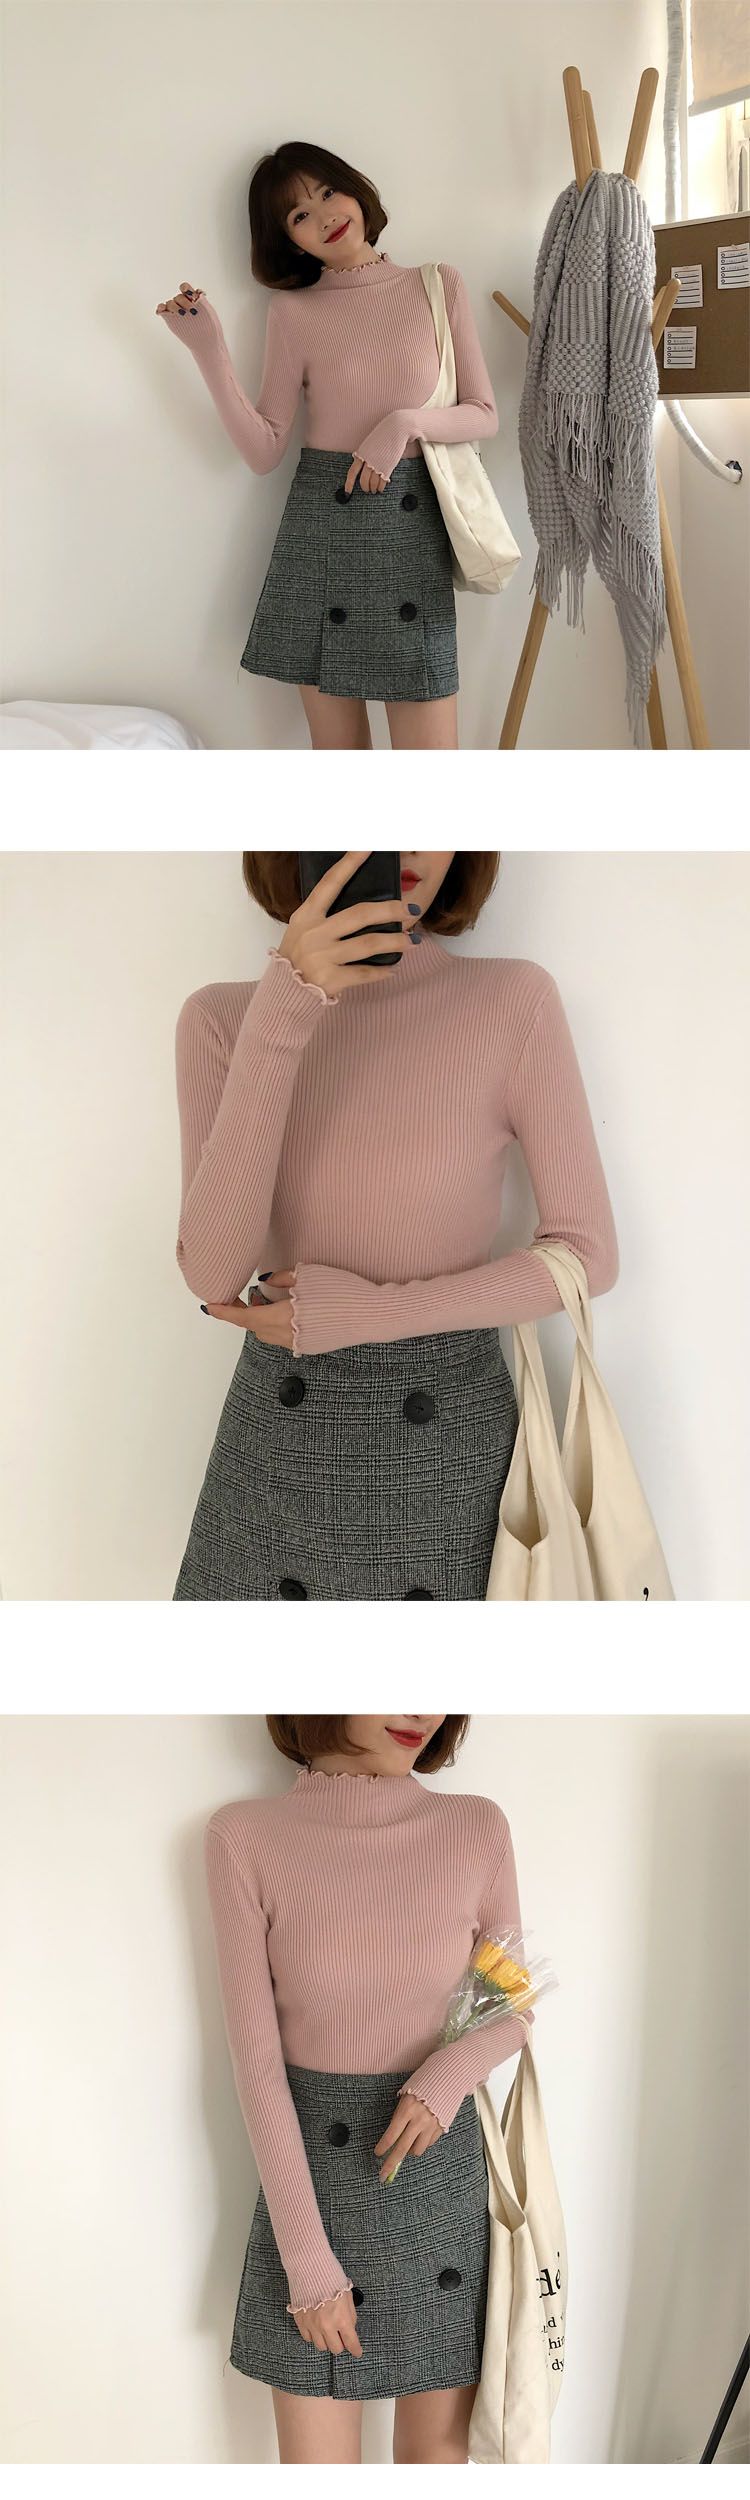 shintimes Women Sweater Slim Sexy Knitted Turtleneck Ruched High Elastic Solid 19 Fall Winter Fashion Sweater Women Pullovers 7